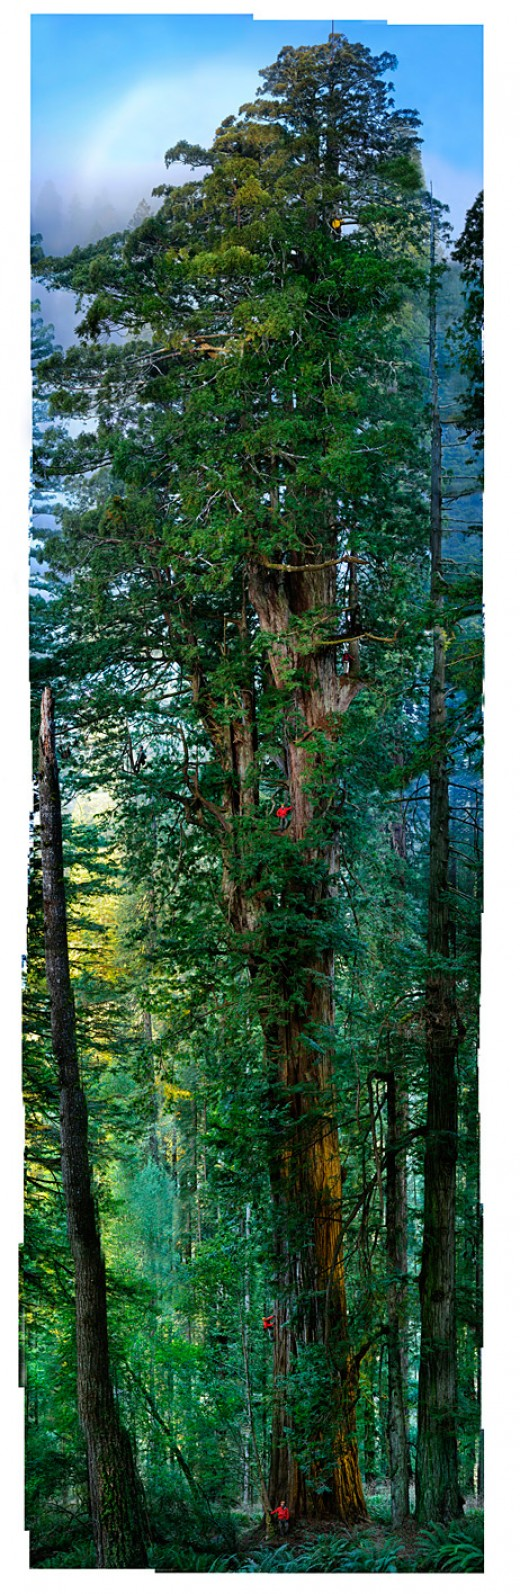 At least 1,500 years old, this 300-foot giant in California's Prairie Creek Redwoods State Park has the most complex crown ever mapped.